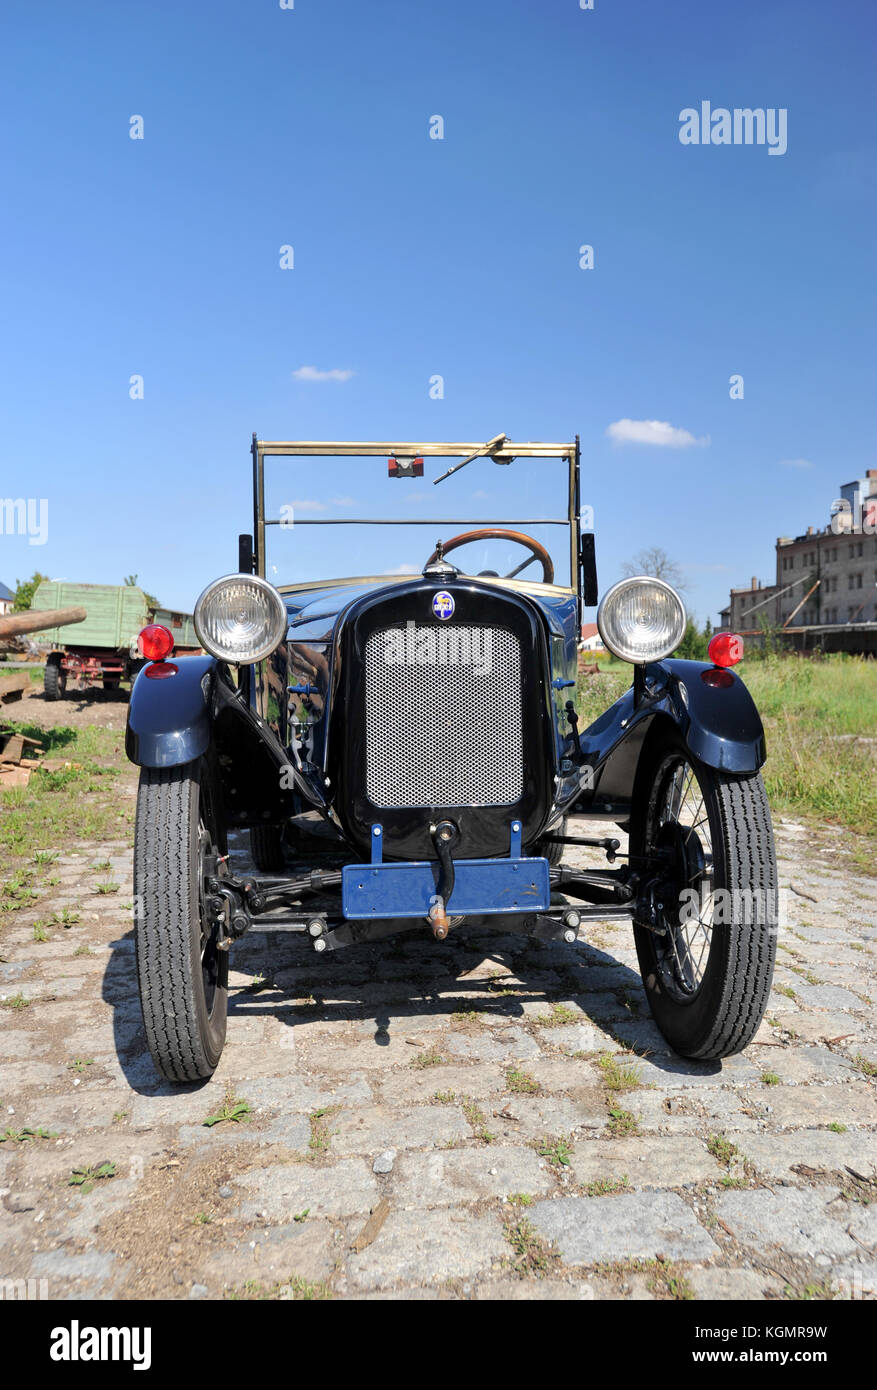 BMW Dixie - the first car made by BMW from 1928 to 1931, it was an ...